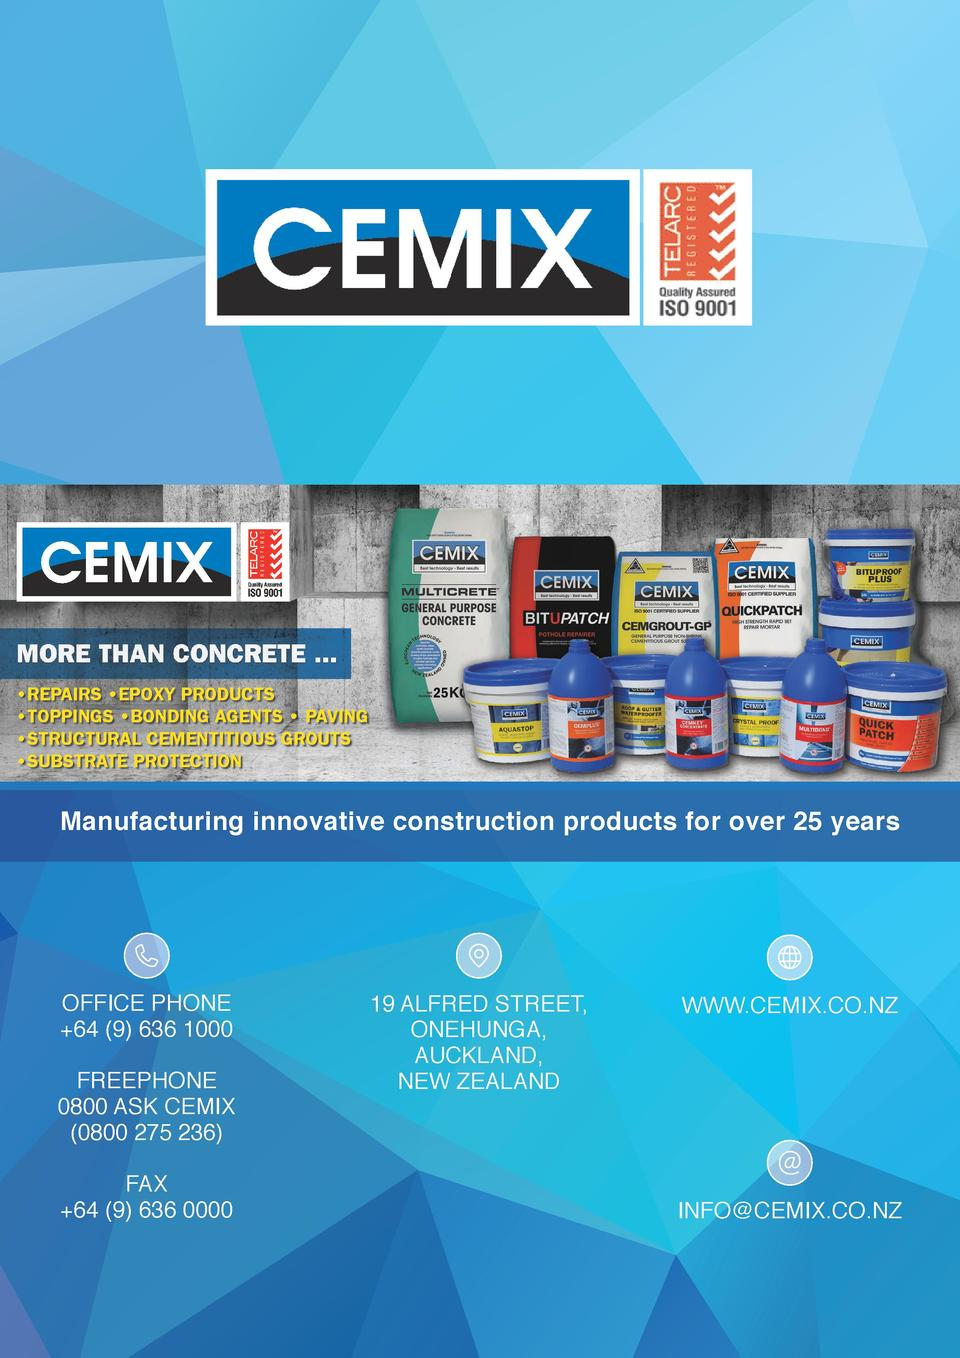 builders   contractors_Aug2016_V2_PRINT.pdf  1  2 08 16  3 22 pm     REPAIRS    EPOXY PRODUCTS    TOPPINGS    BONDING AGEN...